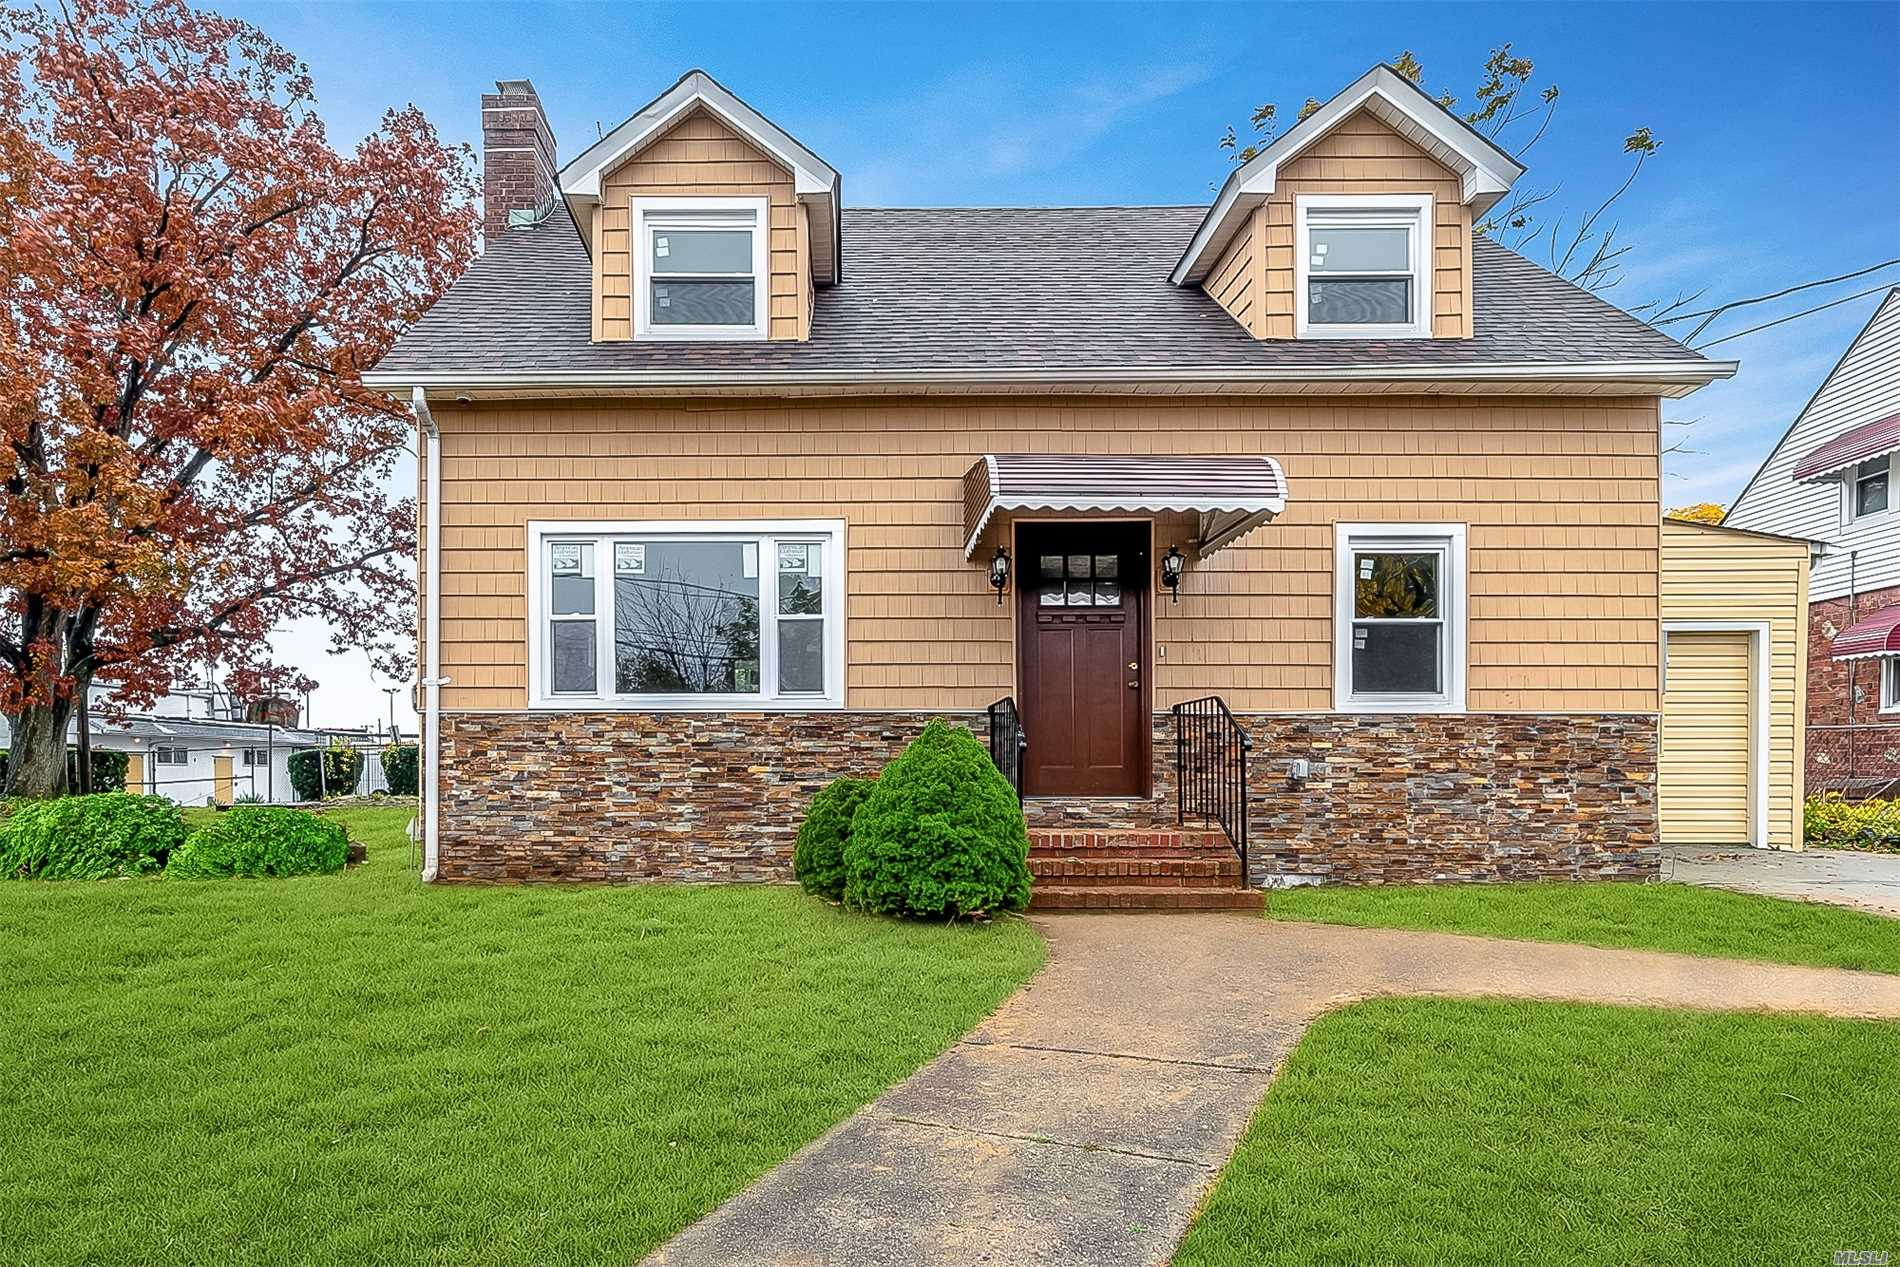 This Beautifully Updated Cape Is Move In Ready, On First Floor, Living Room, Eat In Kitchen, Office, .5 Bathroom. Upstairs 3 Bedrooms & Full Bath. Full Unfinished Basement Great For Storage. Tenant Pays Electric, Gas, Heat & Cable. Owner Pays For Landscaping And Water.